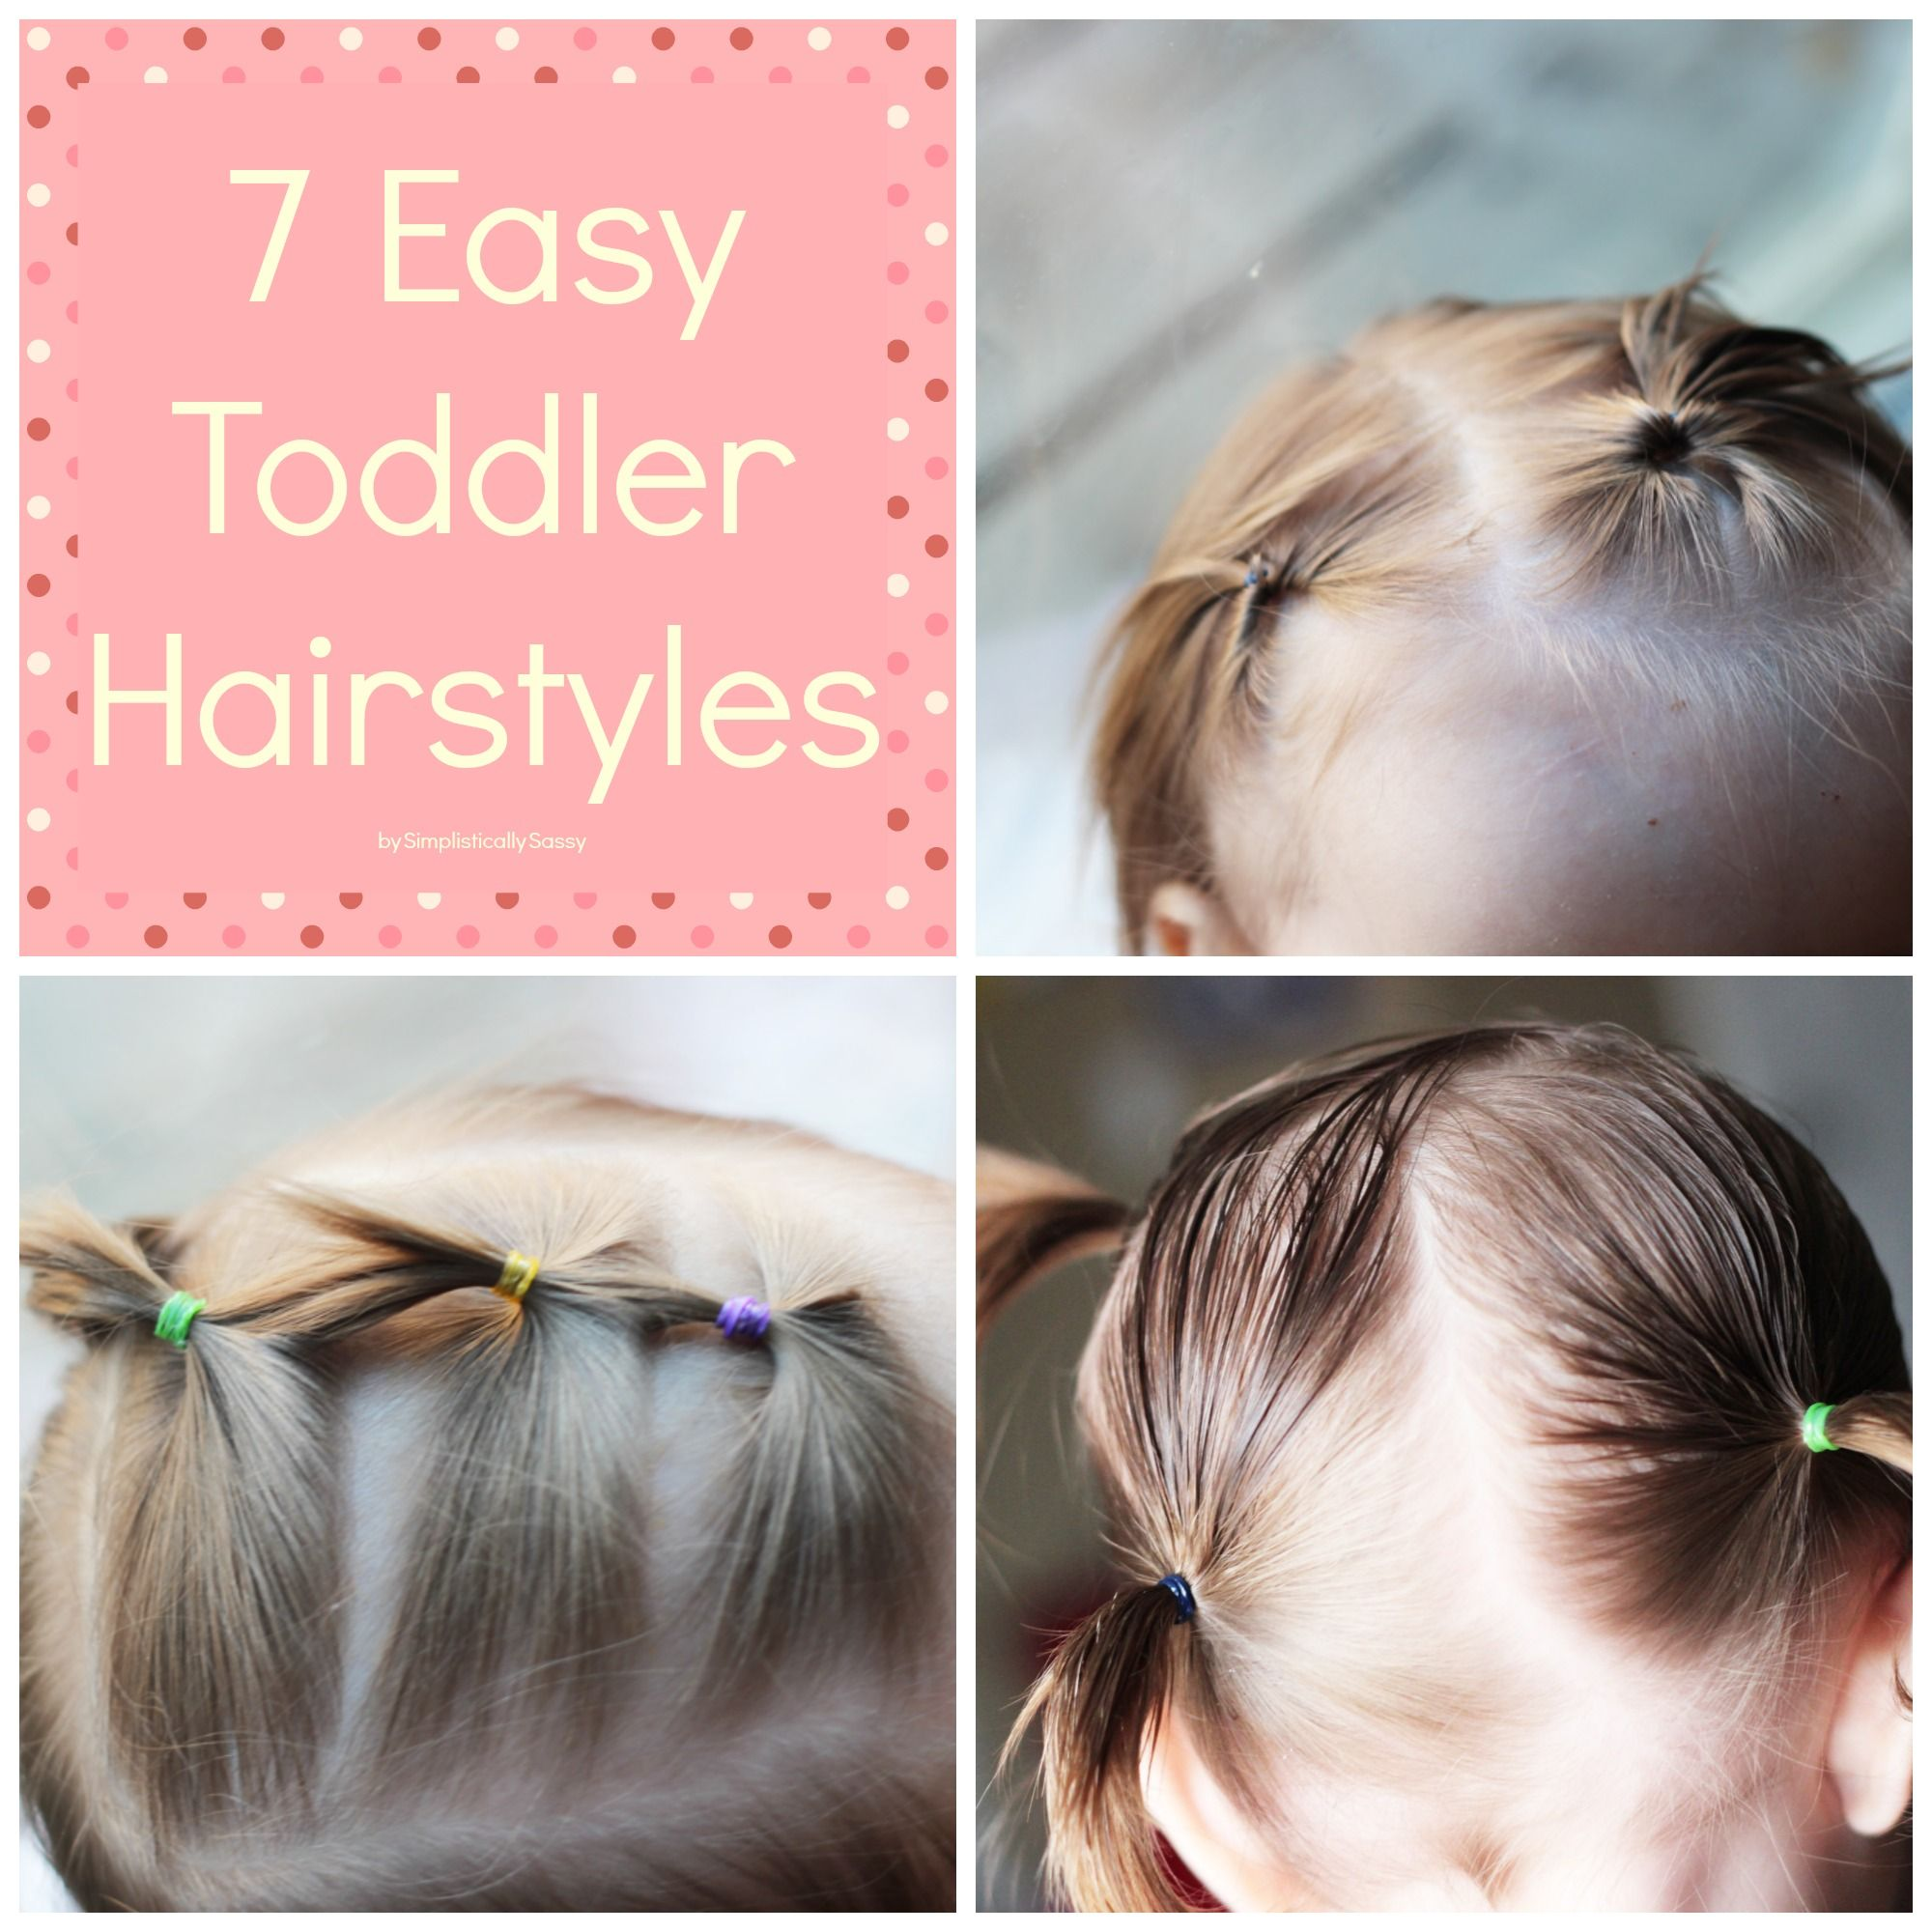 Easy Toddler Hairstyles by Simplistically Sassy  Easy toddler